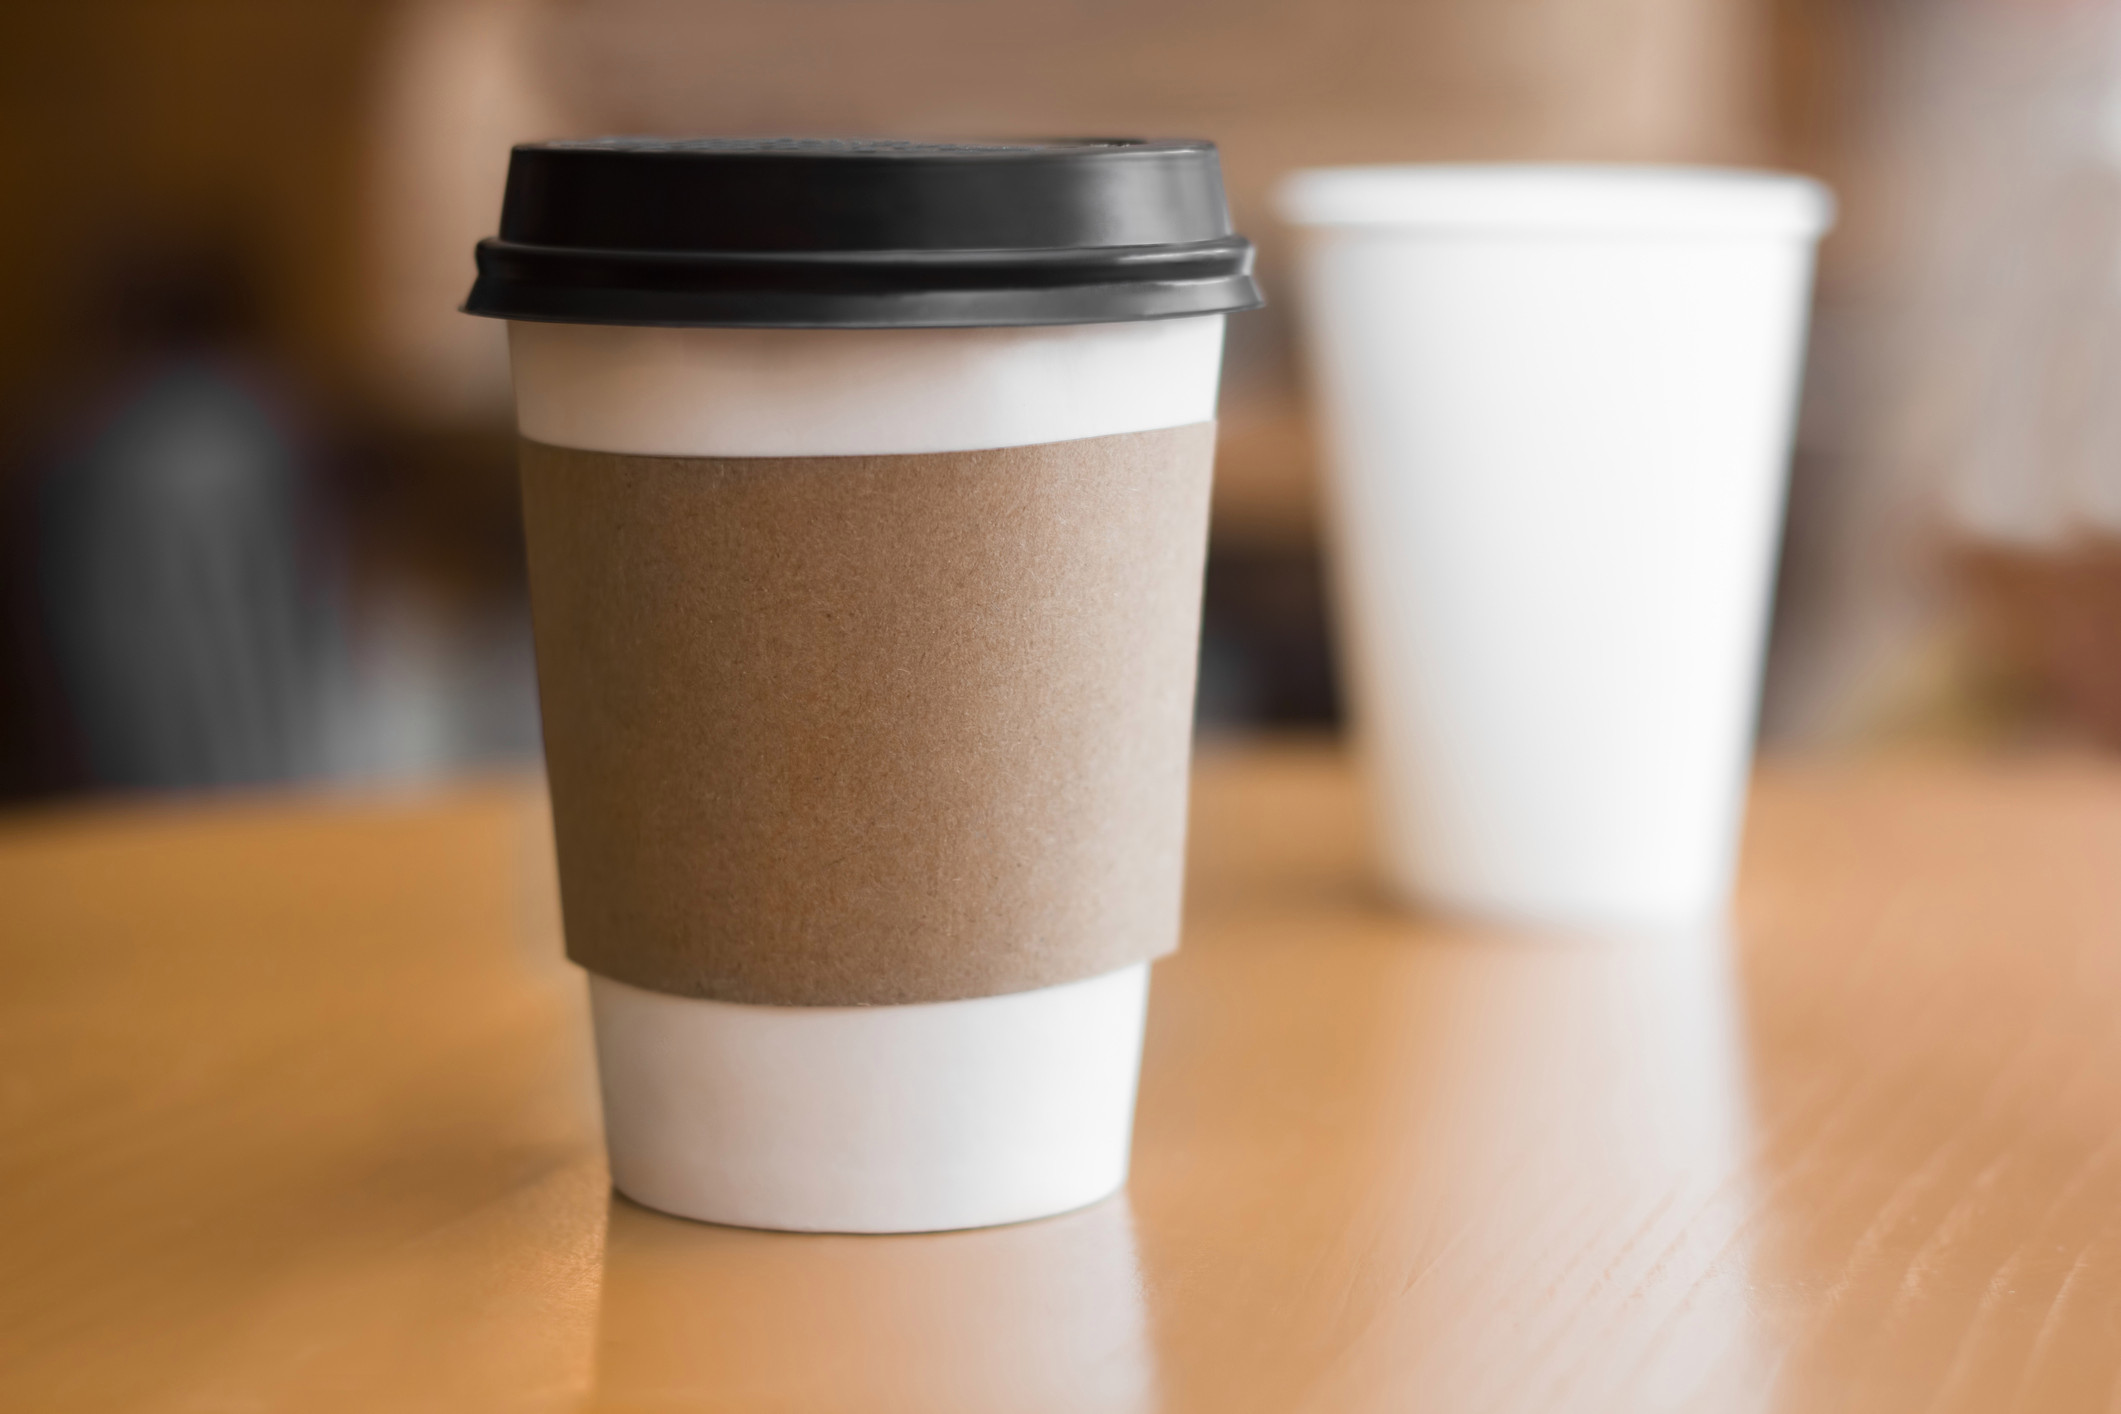 Food and drink chains have been accused of eco-hypocrisy for not allowing paper cups to be reused